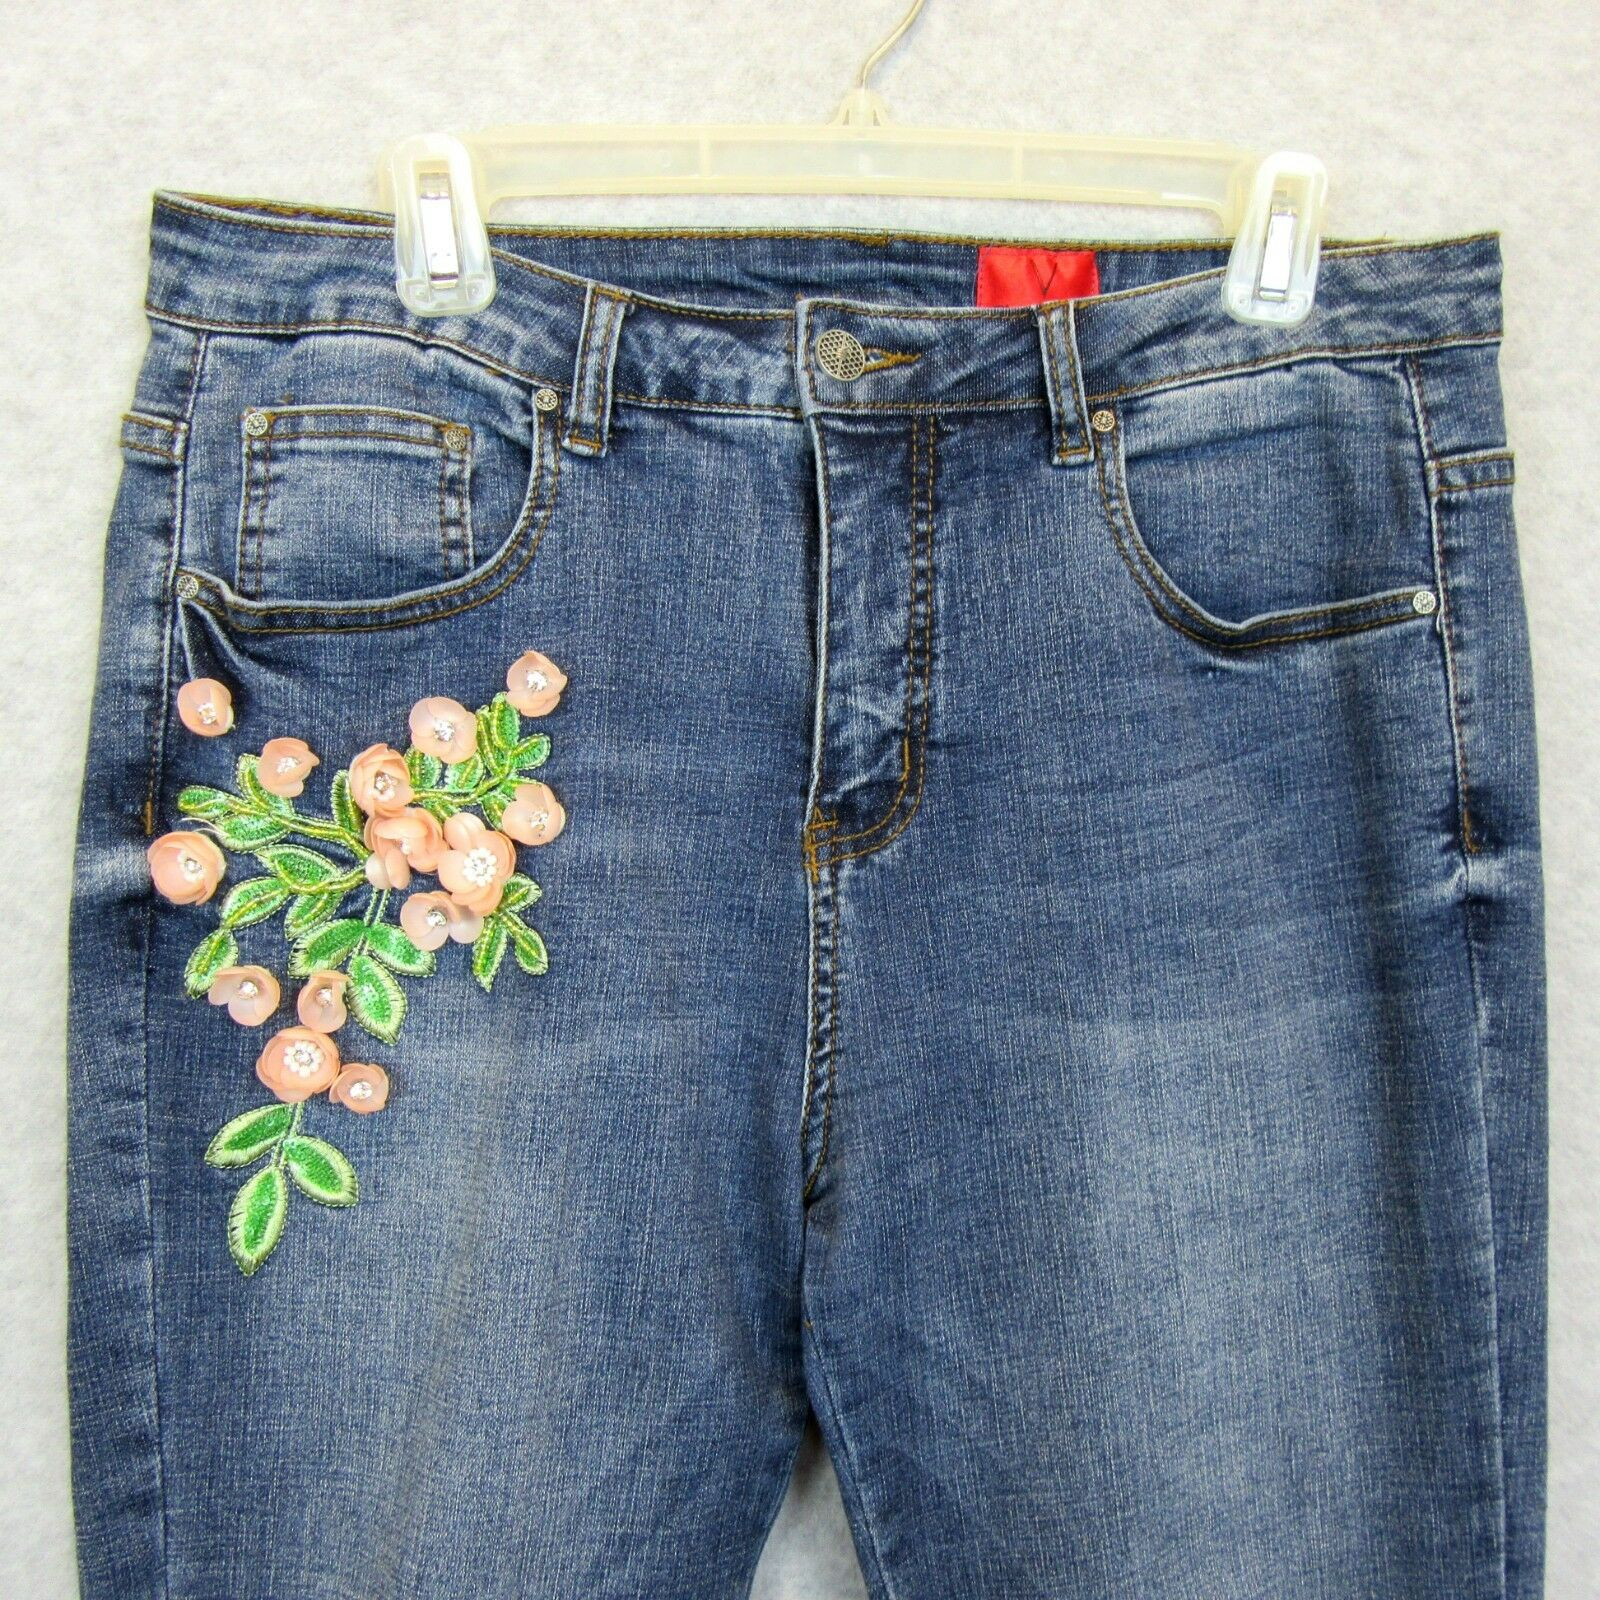 Cristina V Womens Size 12 Jeans 3-D Flowers, Rhinestones, Beading, Embroidered